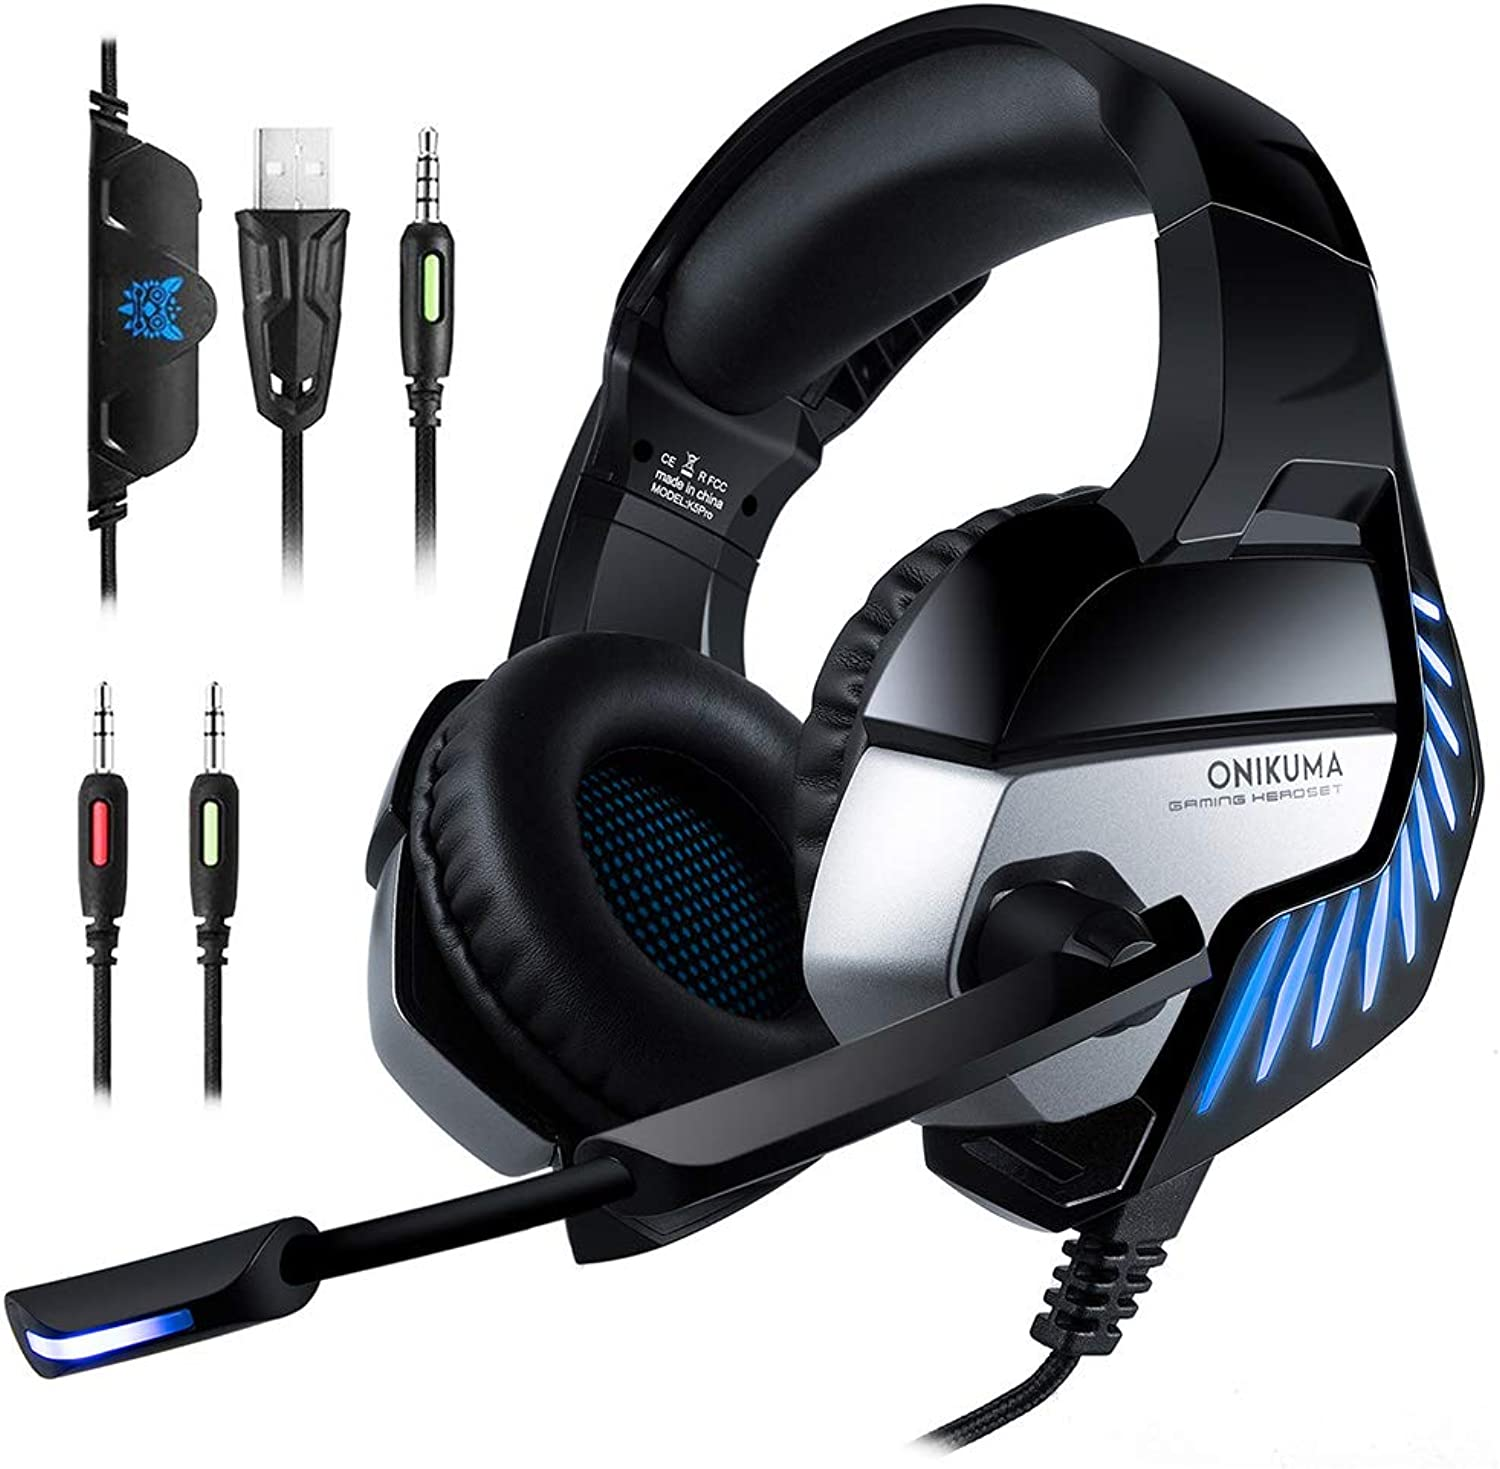 Xihongshi Gaming Headset Headphones Esports Computer PS4 Headphones With Illumination, High Sensitivity Microphones Deliver Voices More Accurate, Clear, Smooth bluee